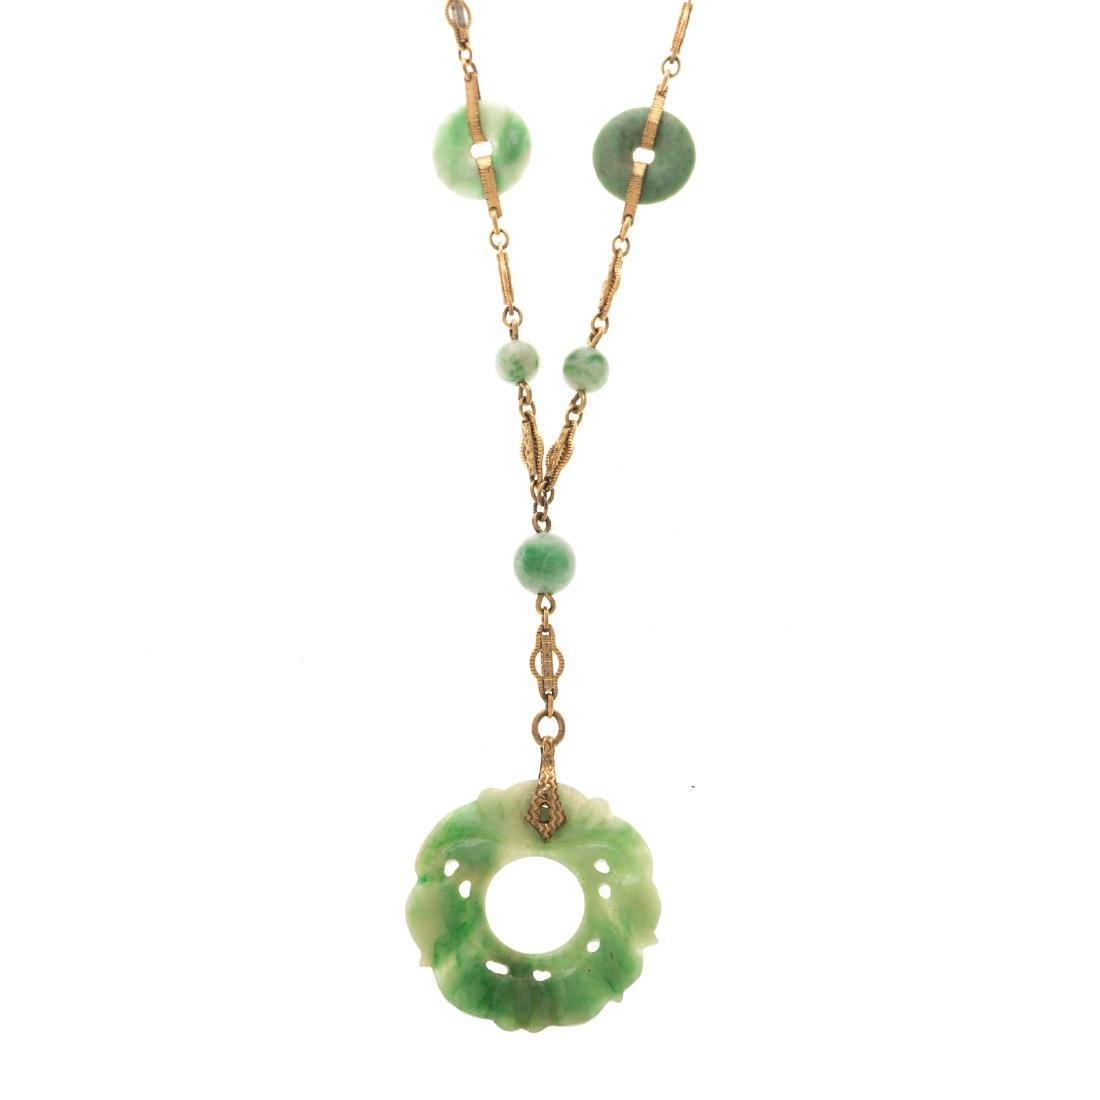 A Lady's Carved Jade and Bead Lariat Necklace - 2